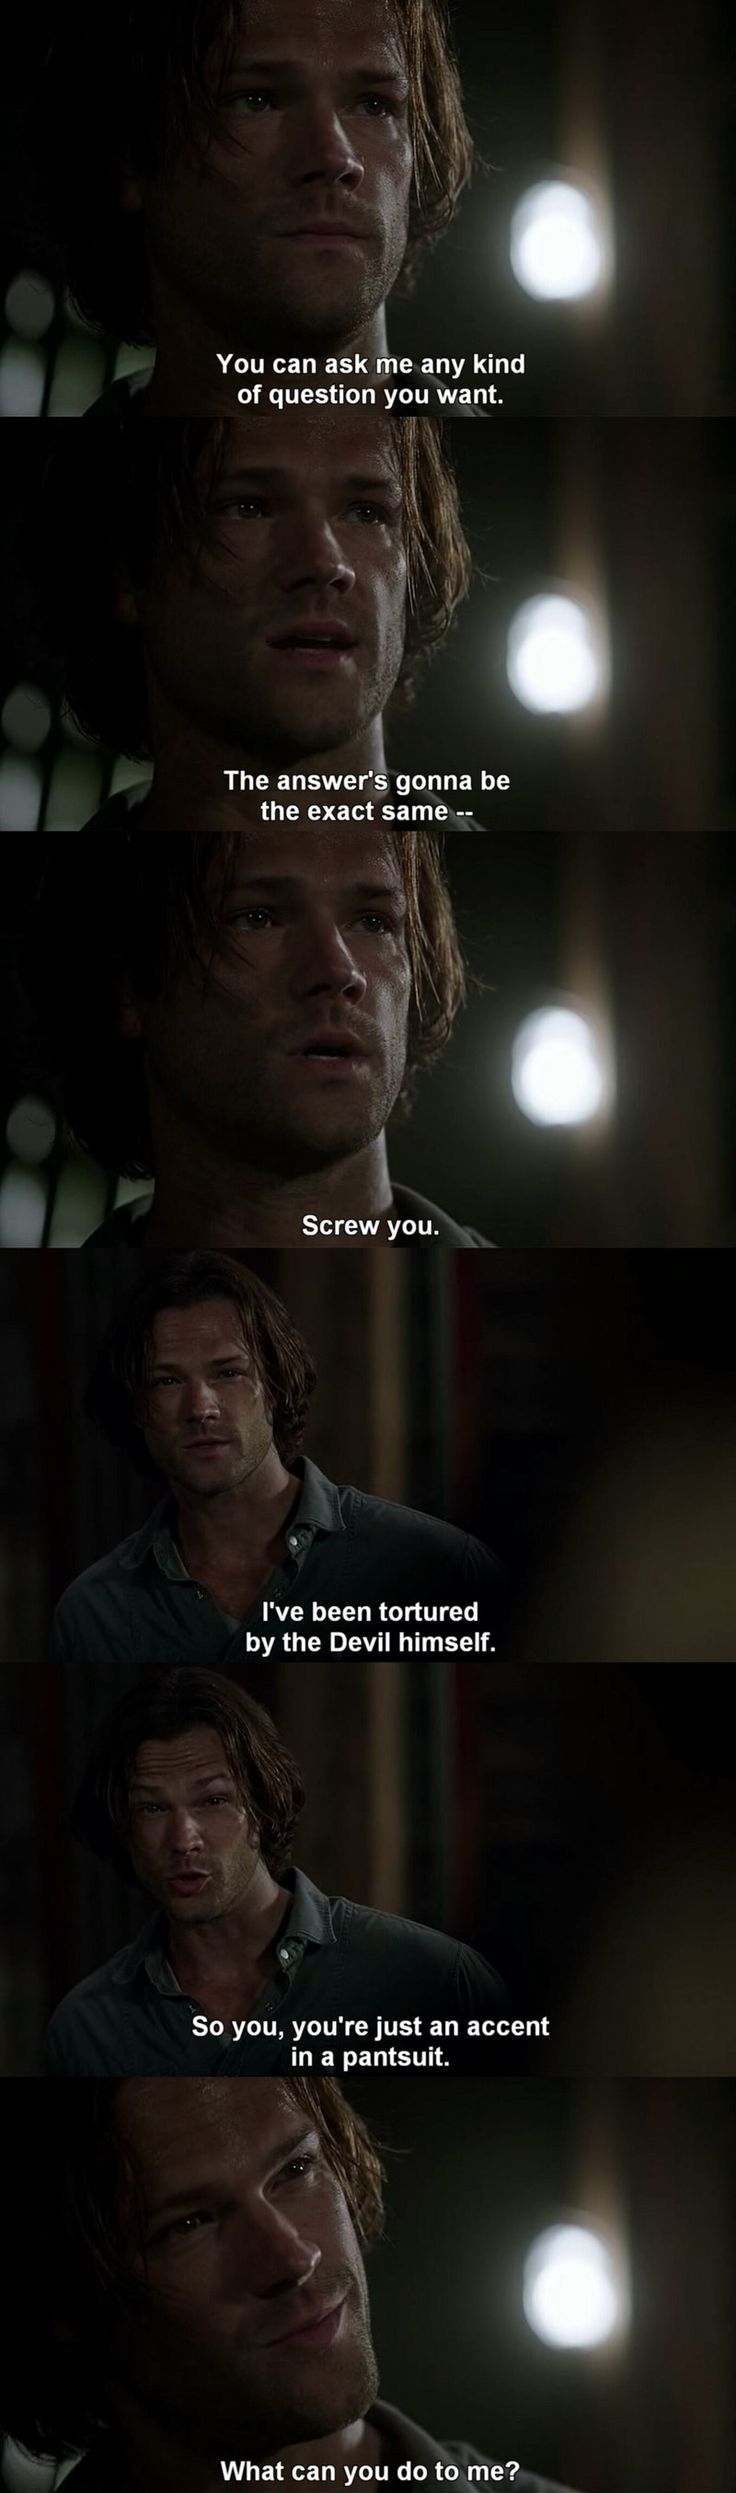 Already in love with season's 12 Sam❤ Also, Sammy's look in the last picture, hahaha love it!!